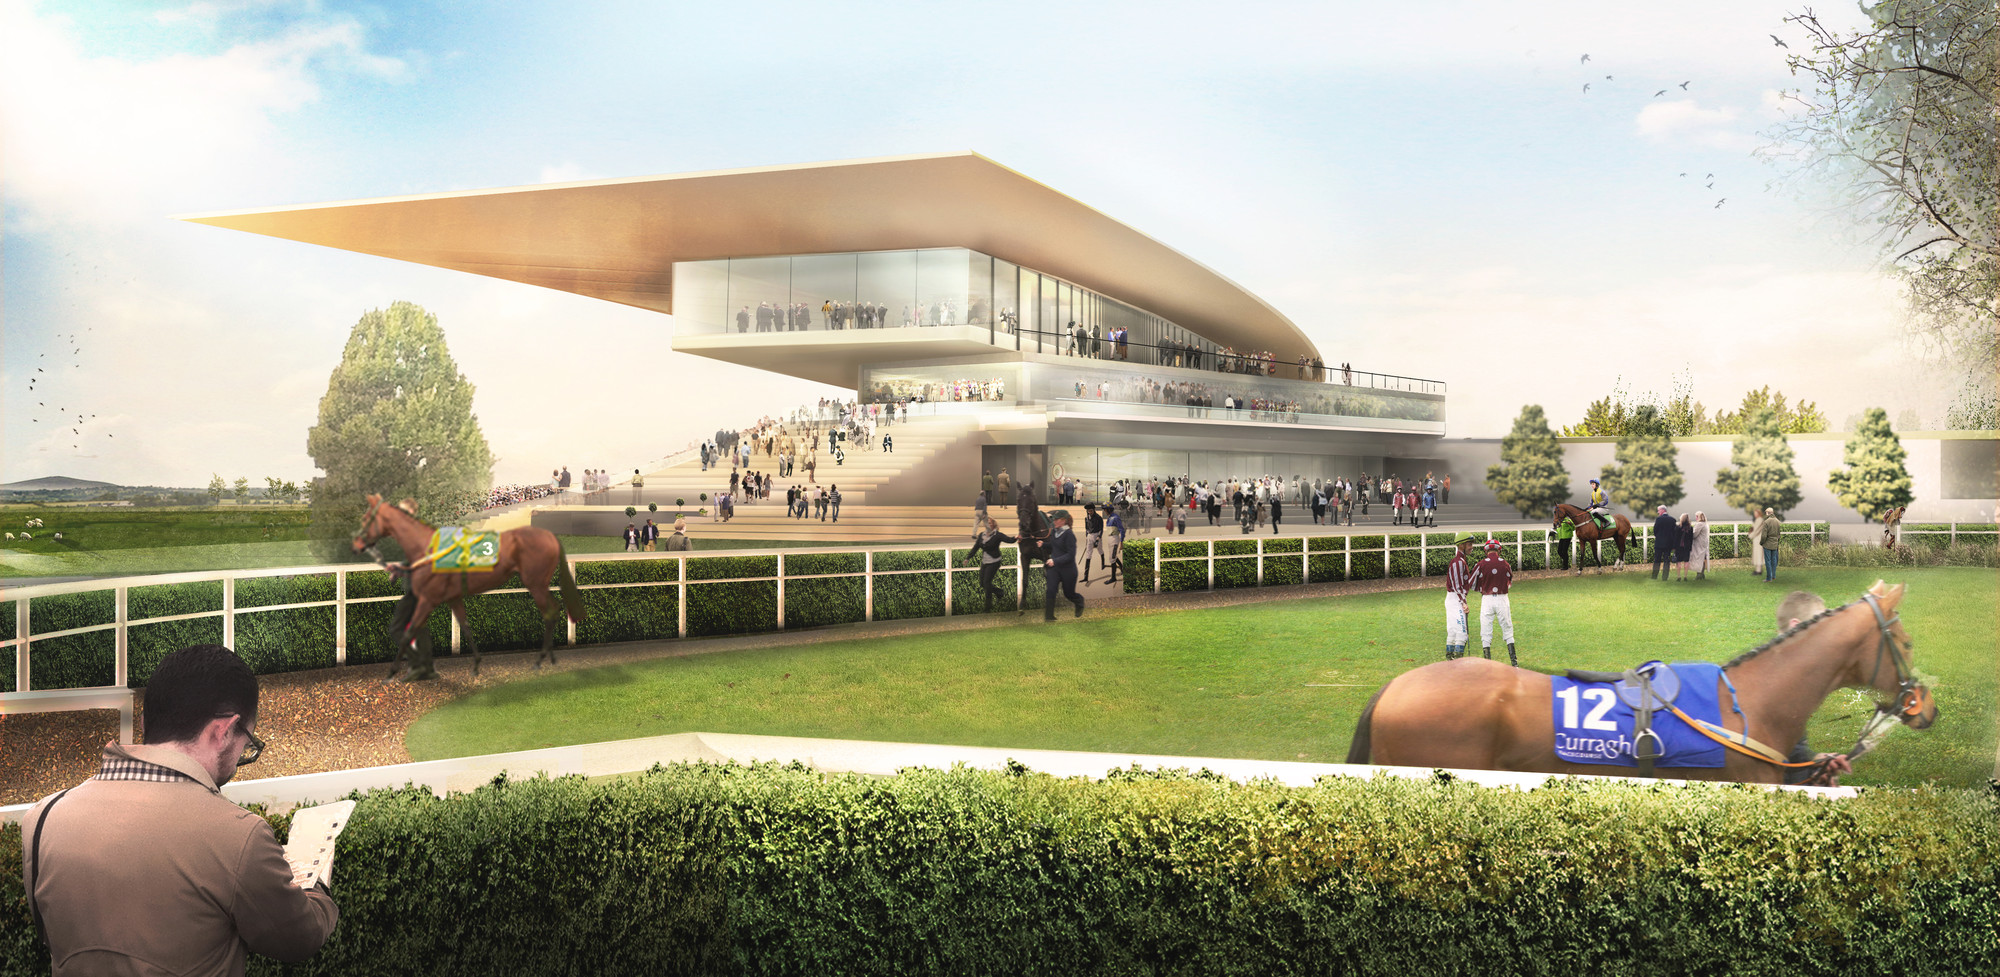 Grimshaw Selected to Redevelop Ireland's Most Prestigious Racecourse, Courtesy of Grimshaw